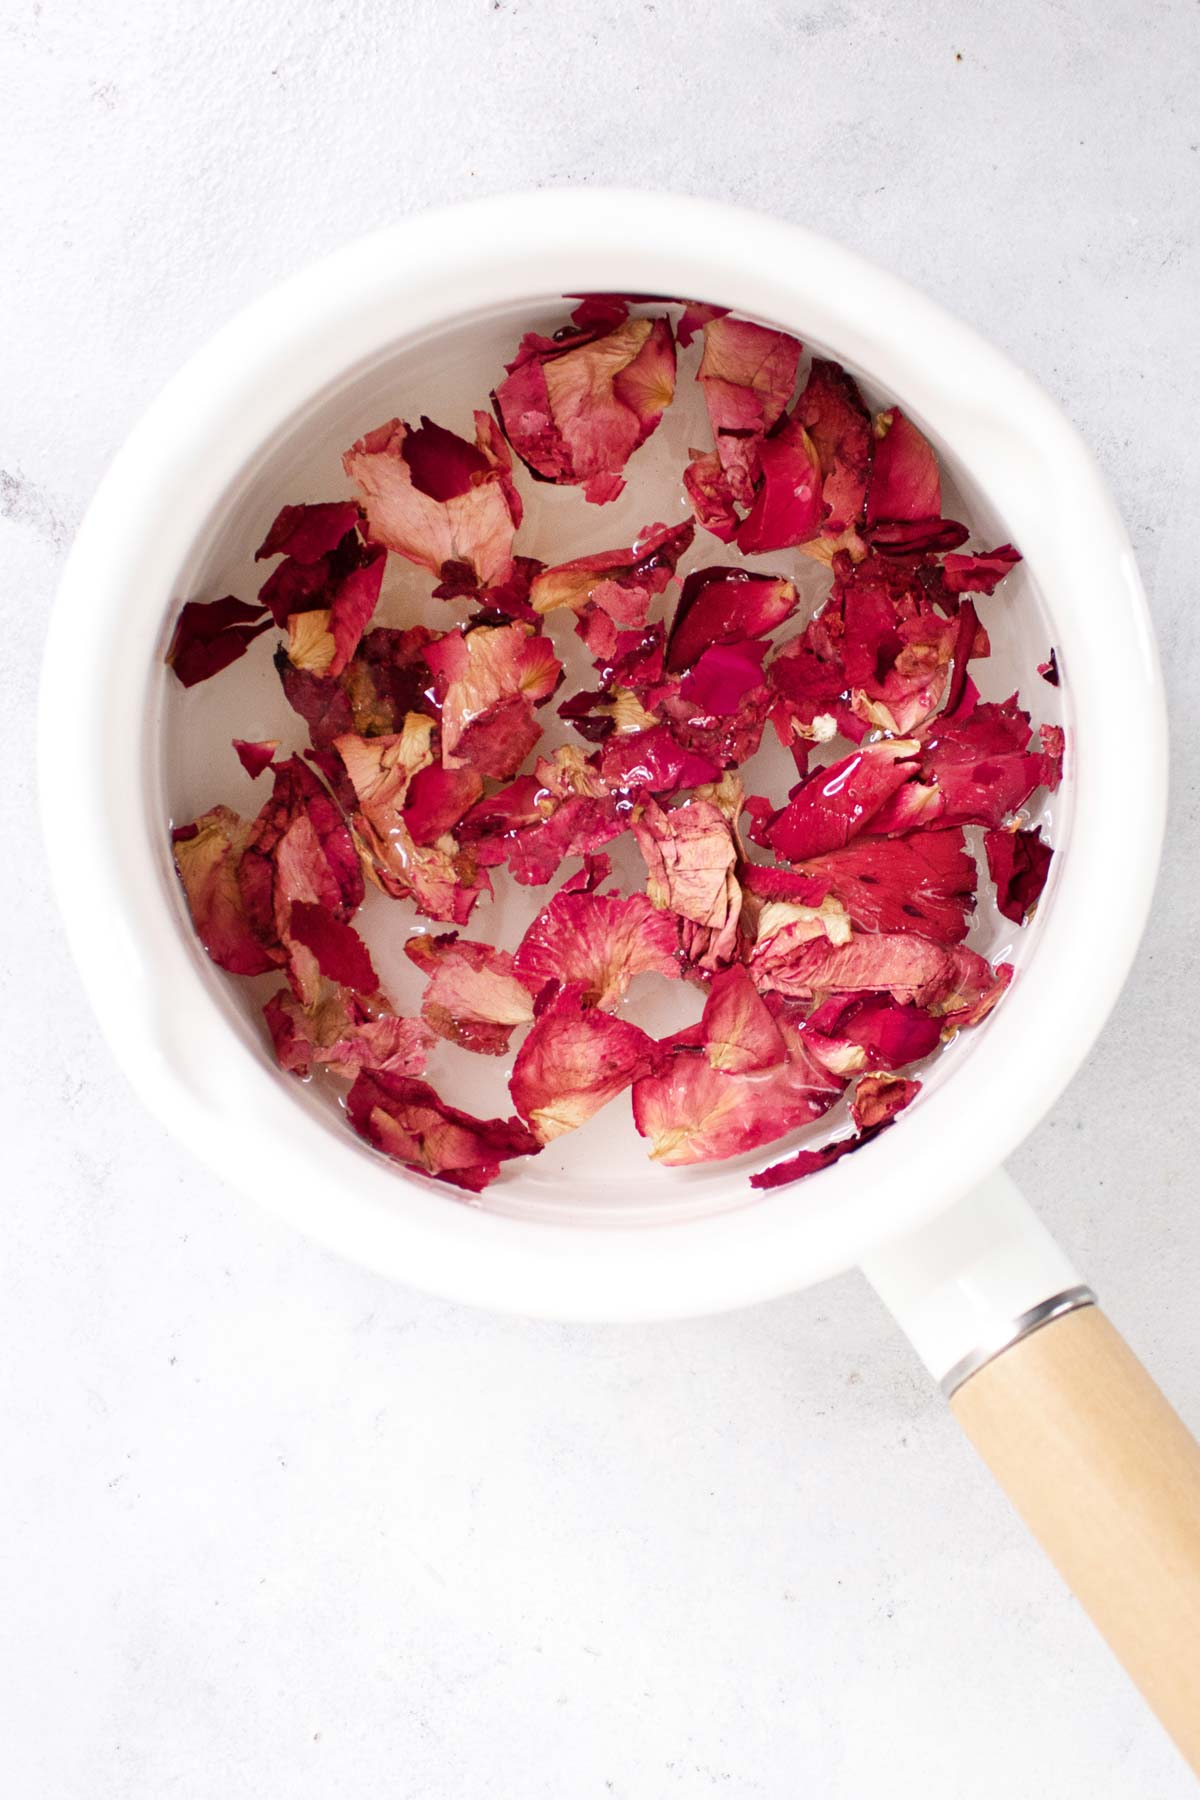 Rose petals in a saucepan with water.